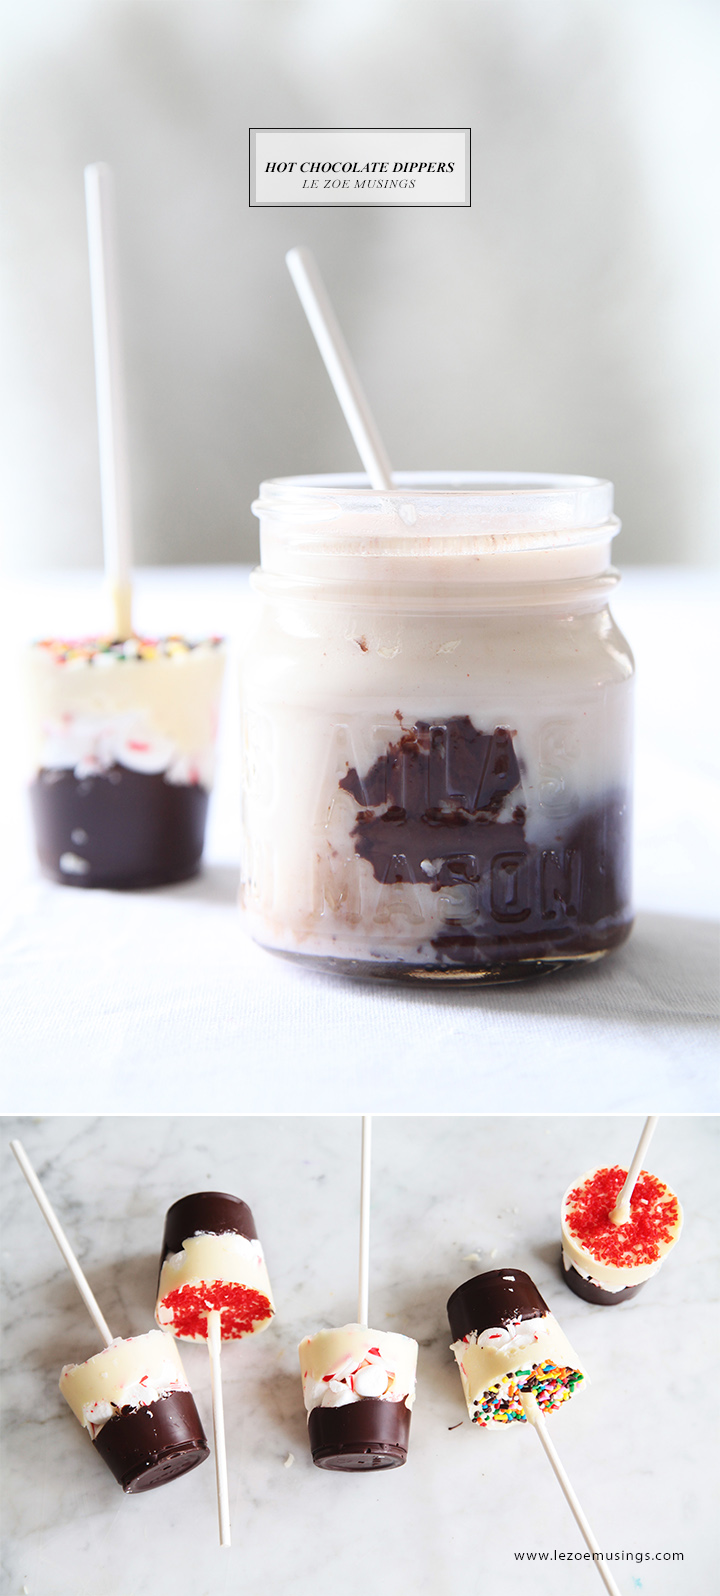 Hot Chocolate Dippers by Le Zoe Musings 5 copy